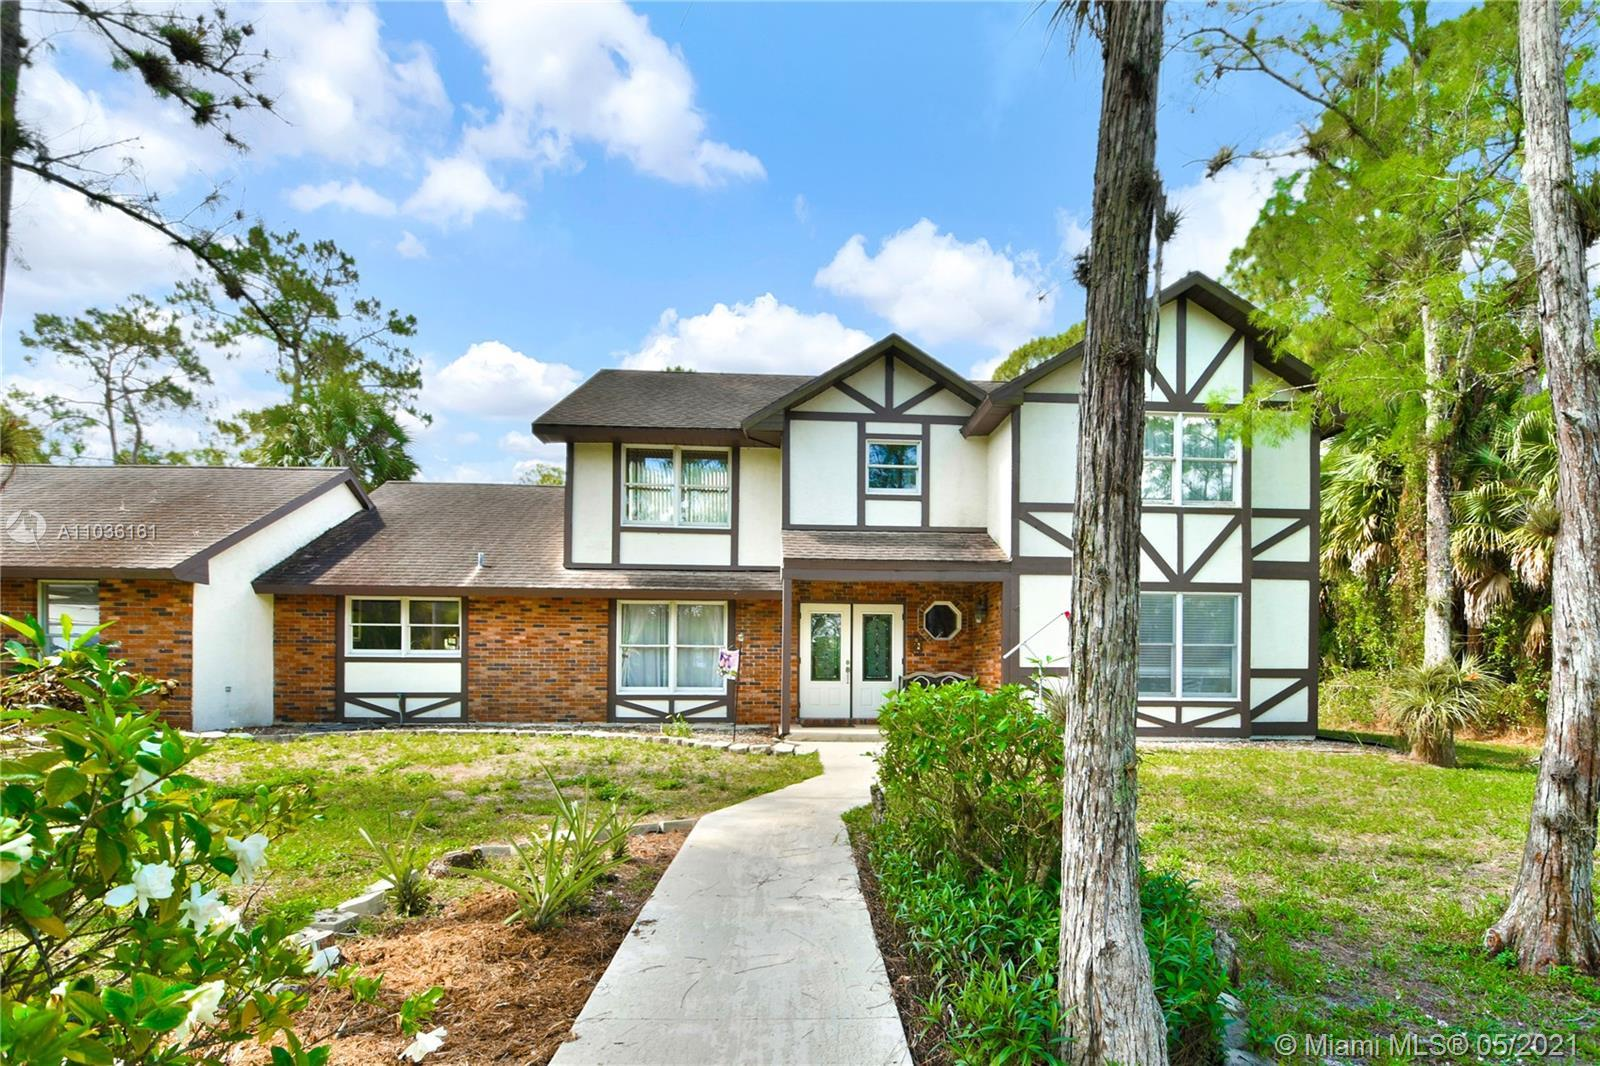 Remarkable architecture beauty on 2 acres in highly sought after Loxahatchee Groves.  Actual AC squa